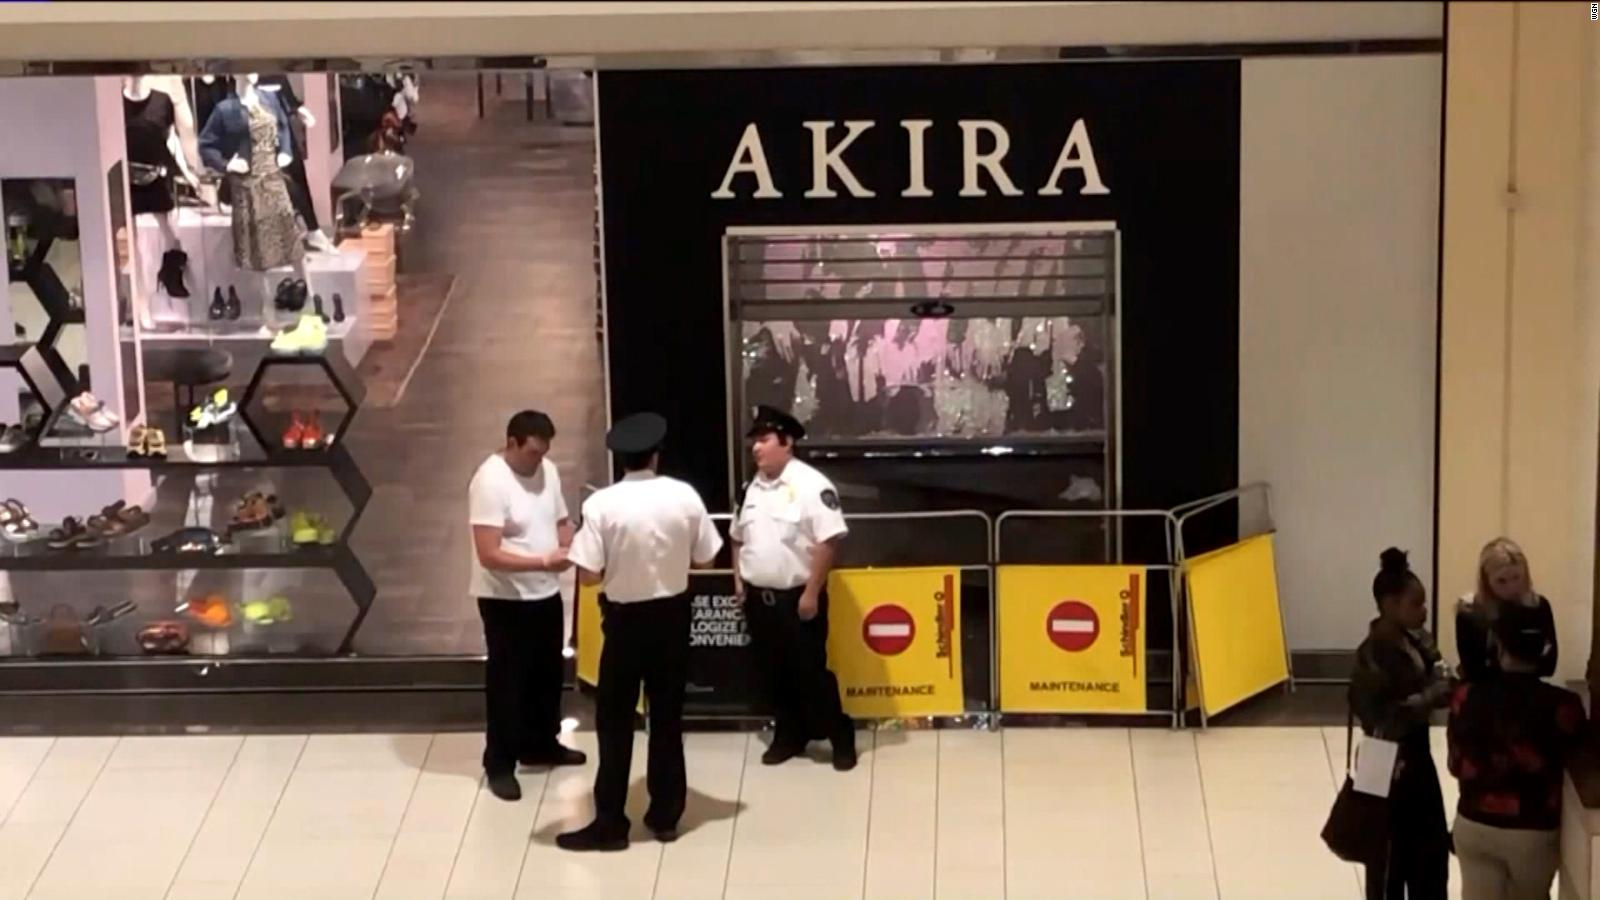 Toddler killed by falling store display